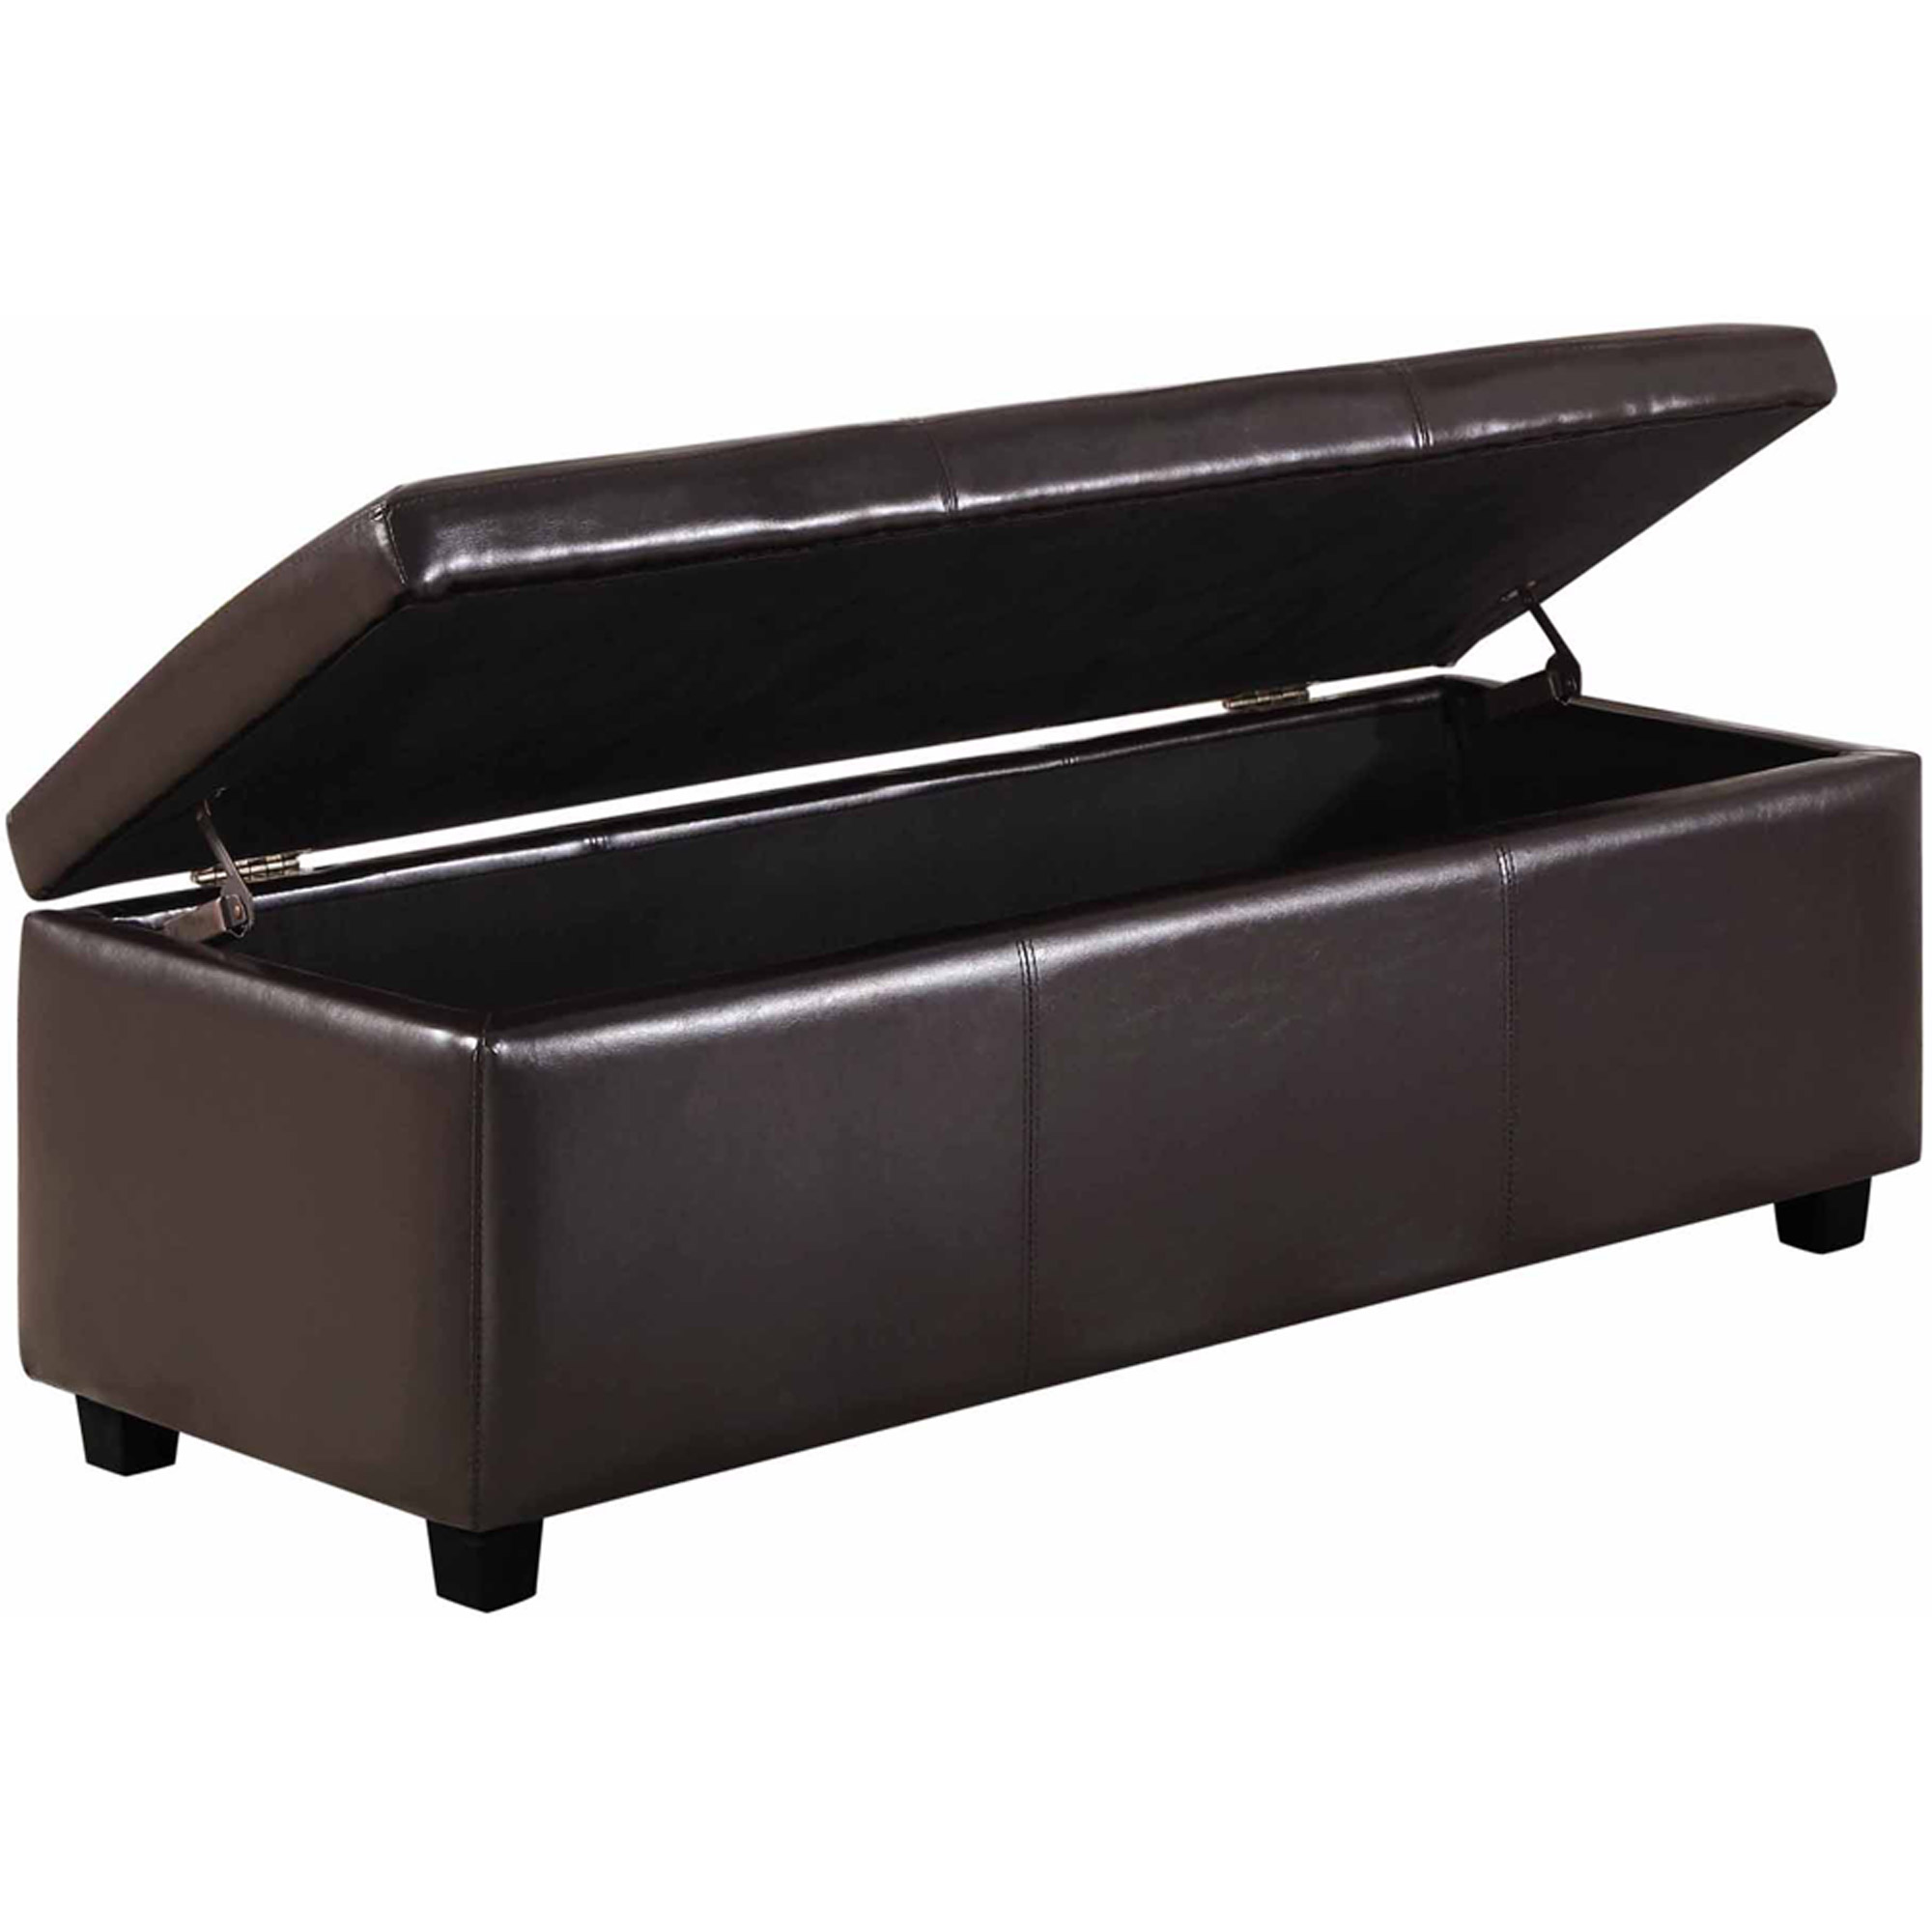 Simpli Home Avalon Rectangular Faux Leather Storage Ottoman Bench | EBay